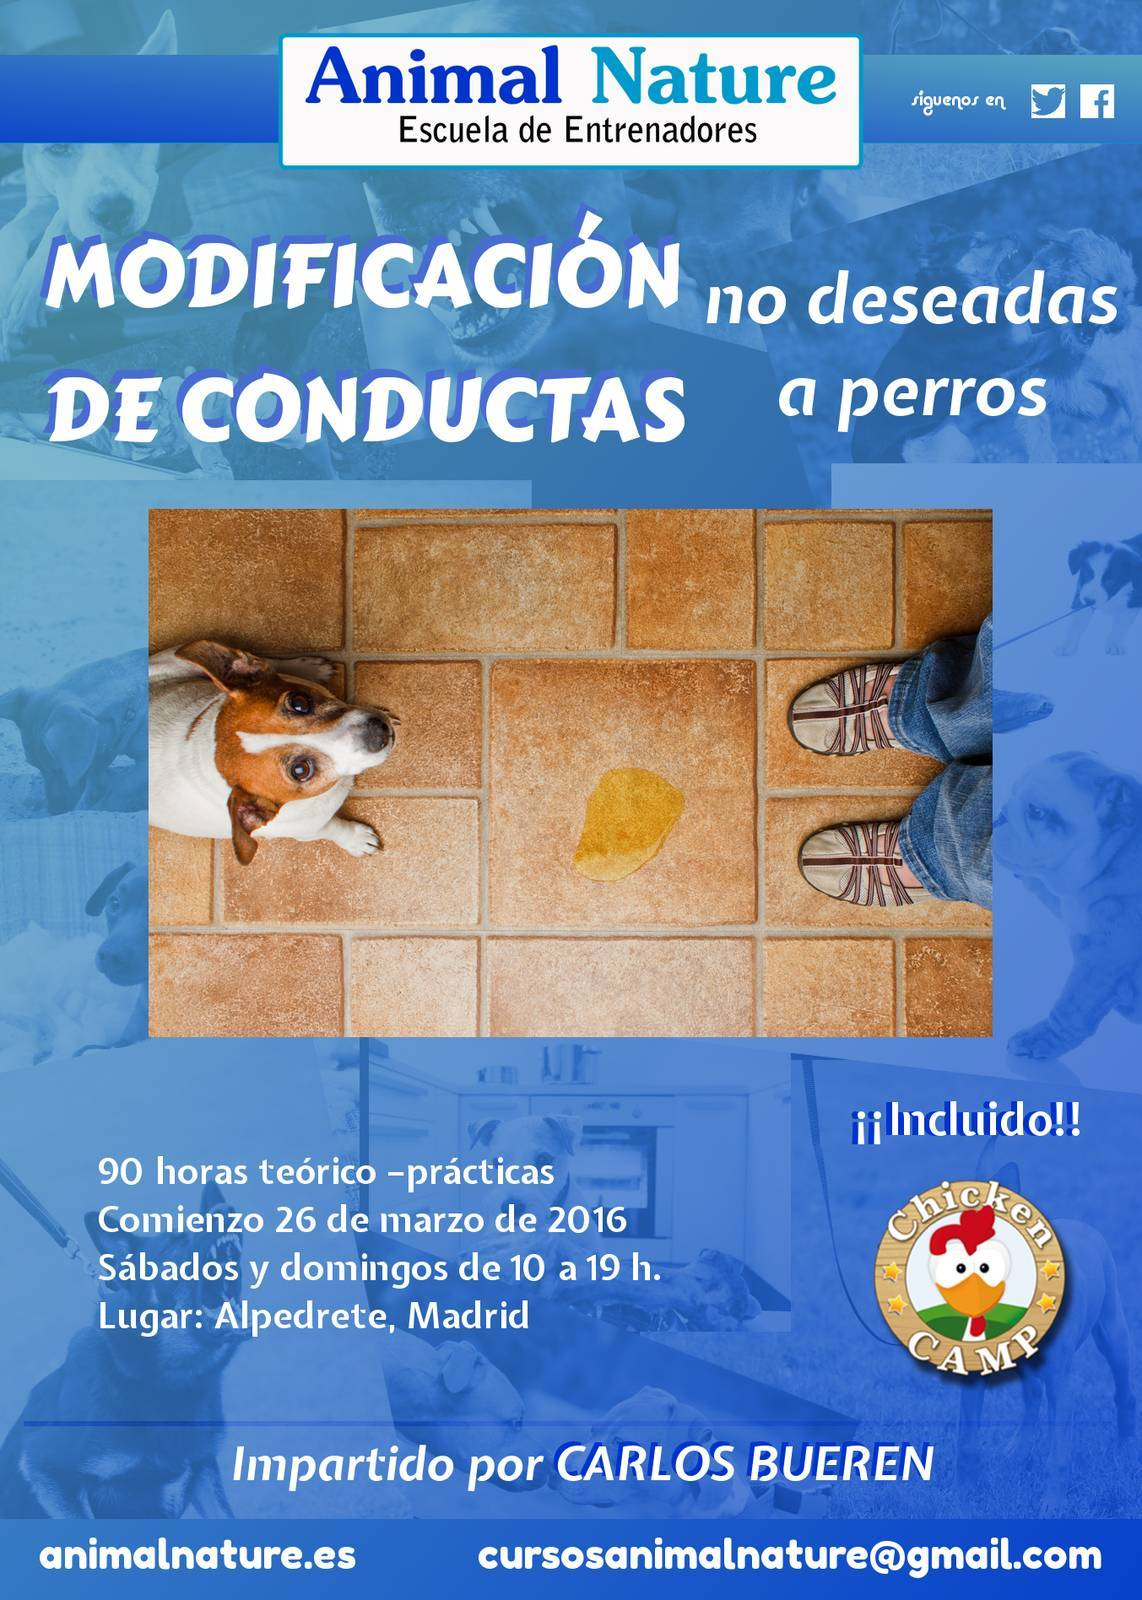 Curso de modificación de conductas no deseadas a perros de Animal Nature